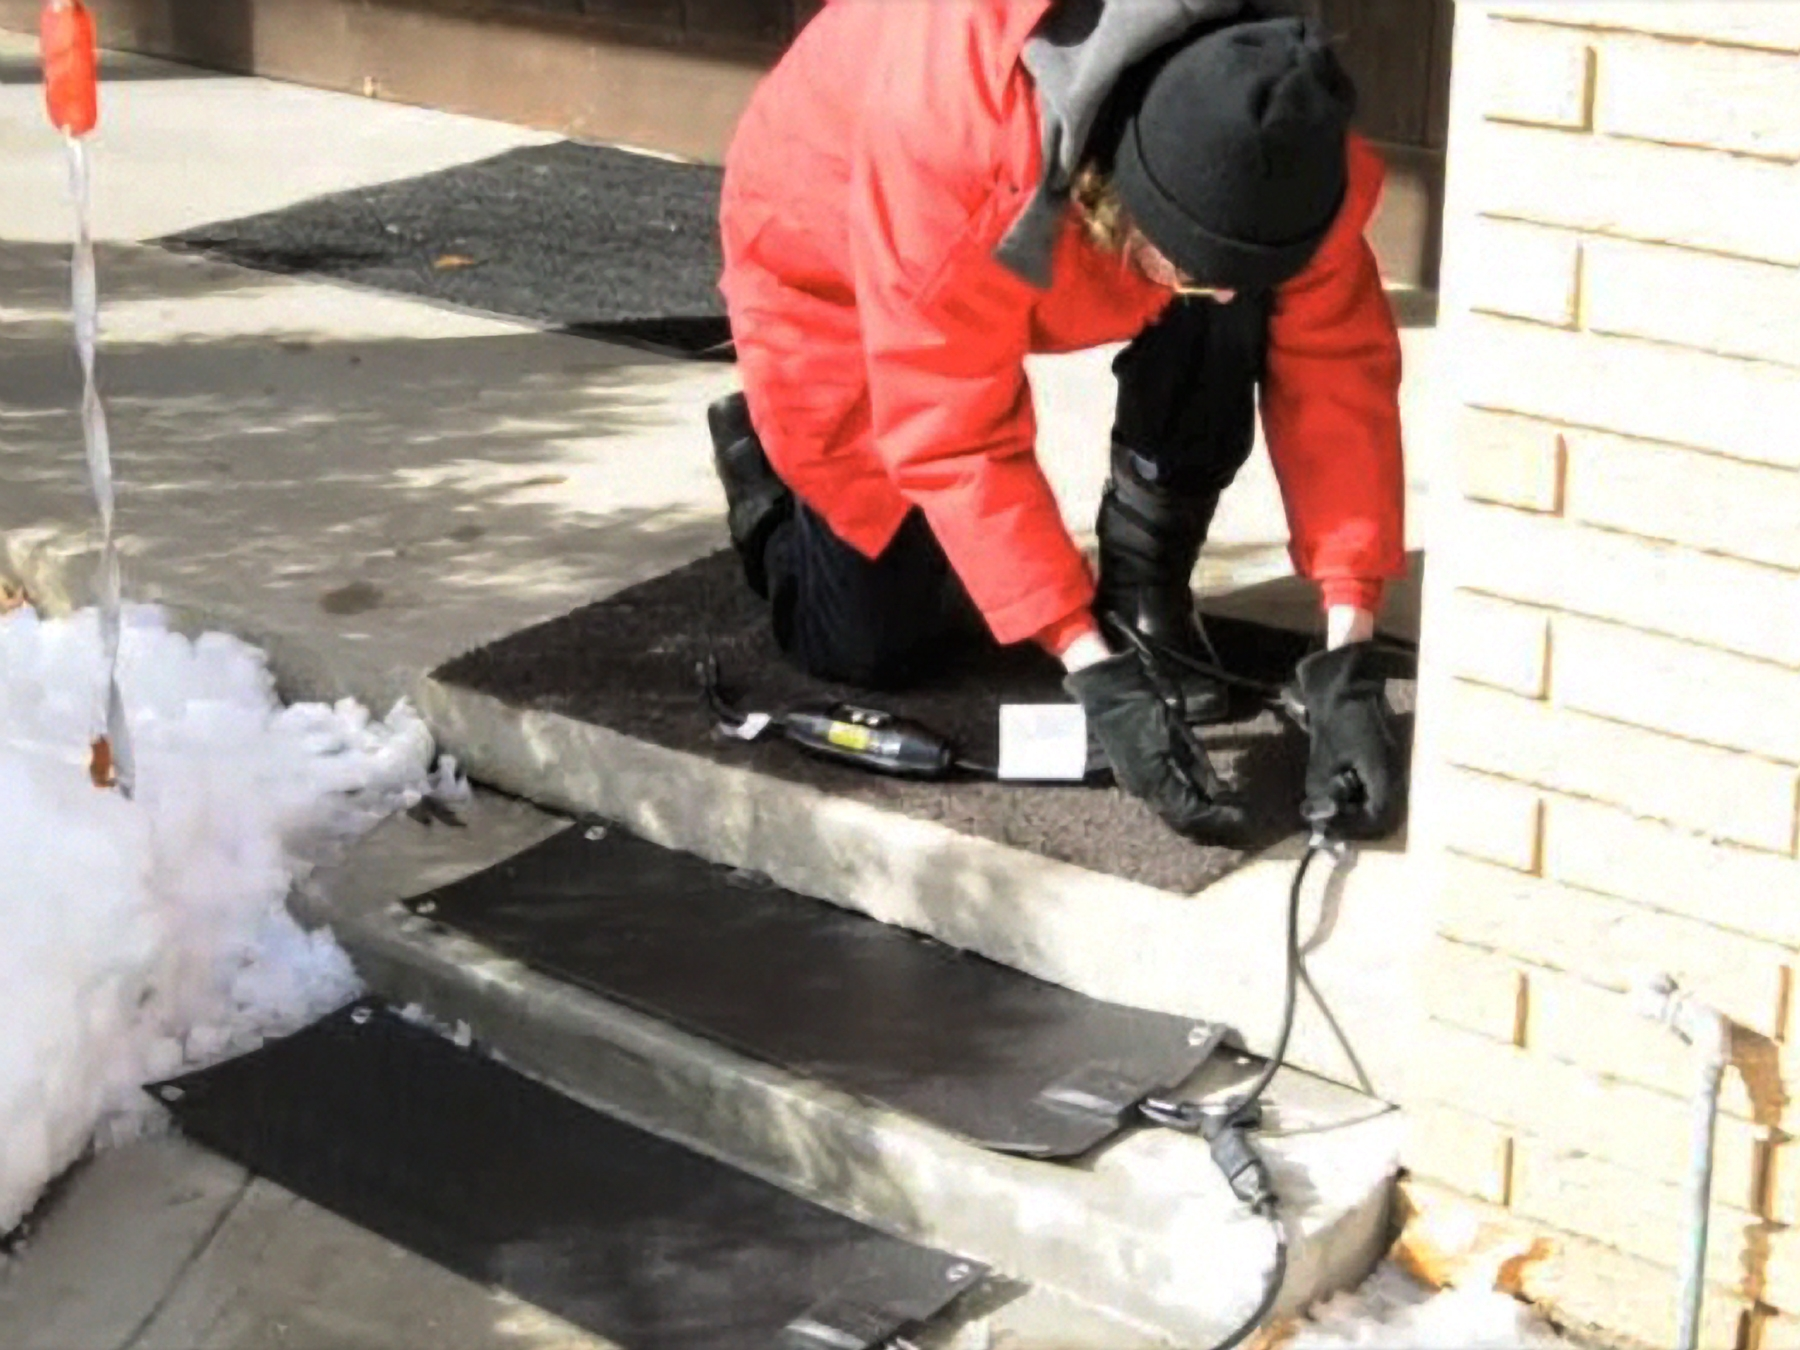 New Residential Heated Stair Tread Mats Melt Snow And Ice From   Outdoor Stair Treads For Ice And Snow   Heated   Mat   Cool Inventions   Non Slip Mats   Heattrak